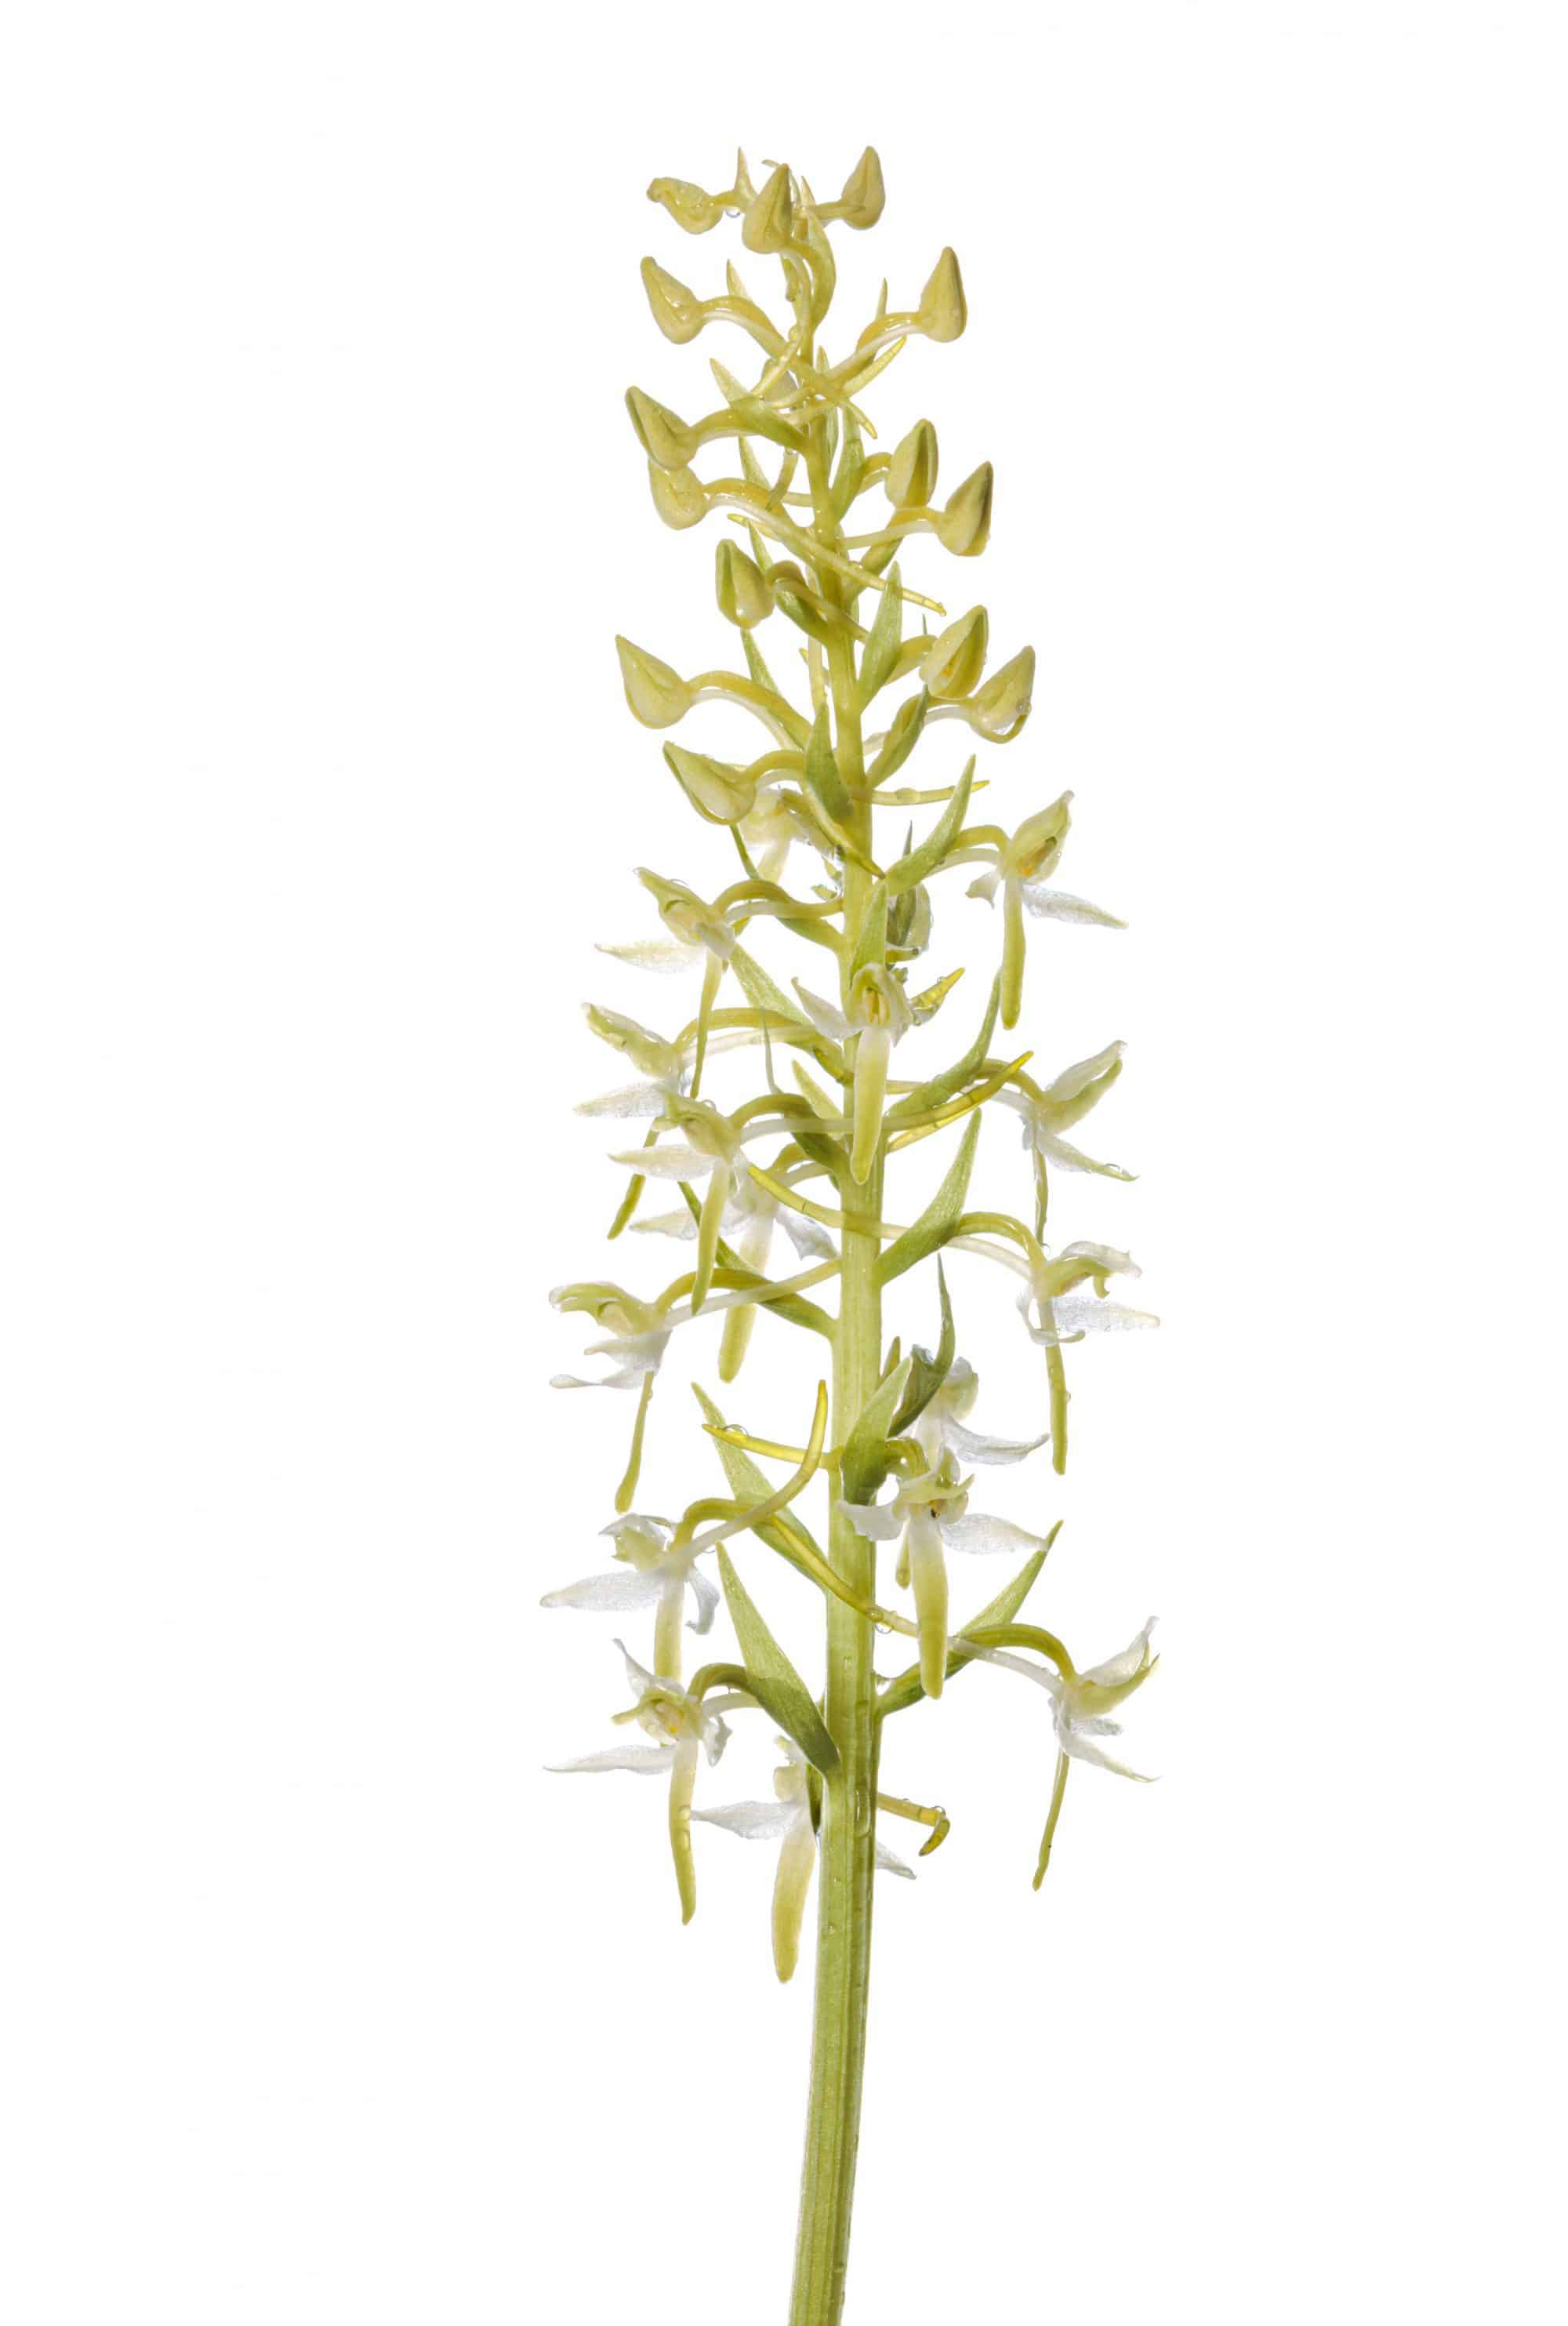 Lesser Butterfly Orchid (Platanthera bifolia) photographed against a white background. Dartmoor Natioanl Park, Devon. June.